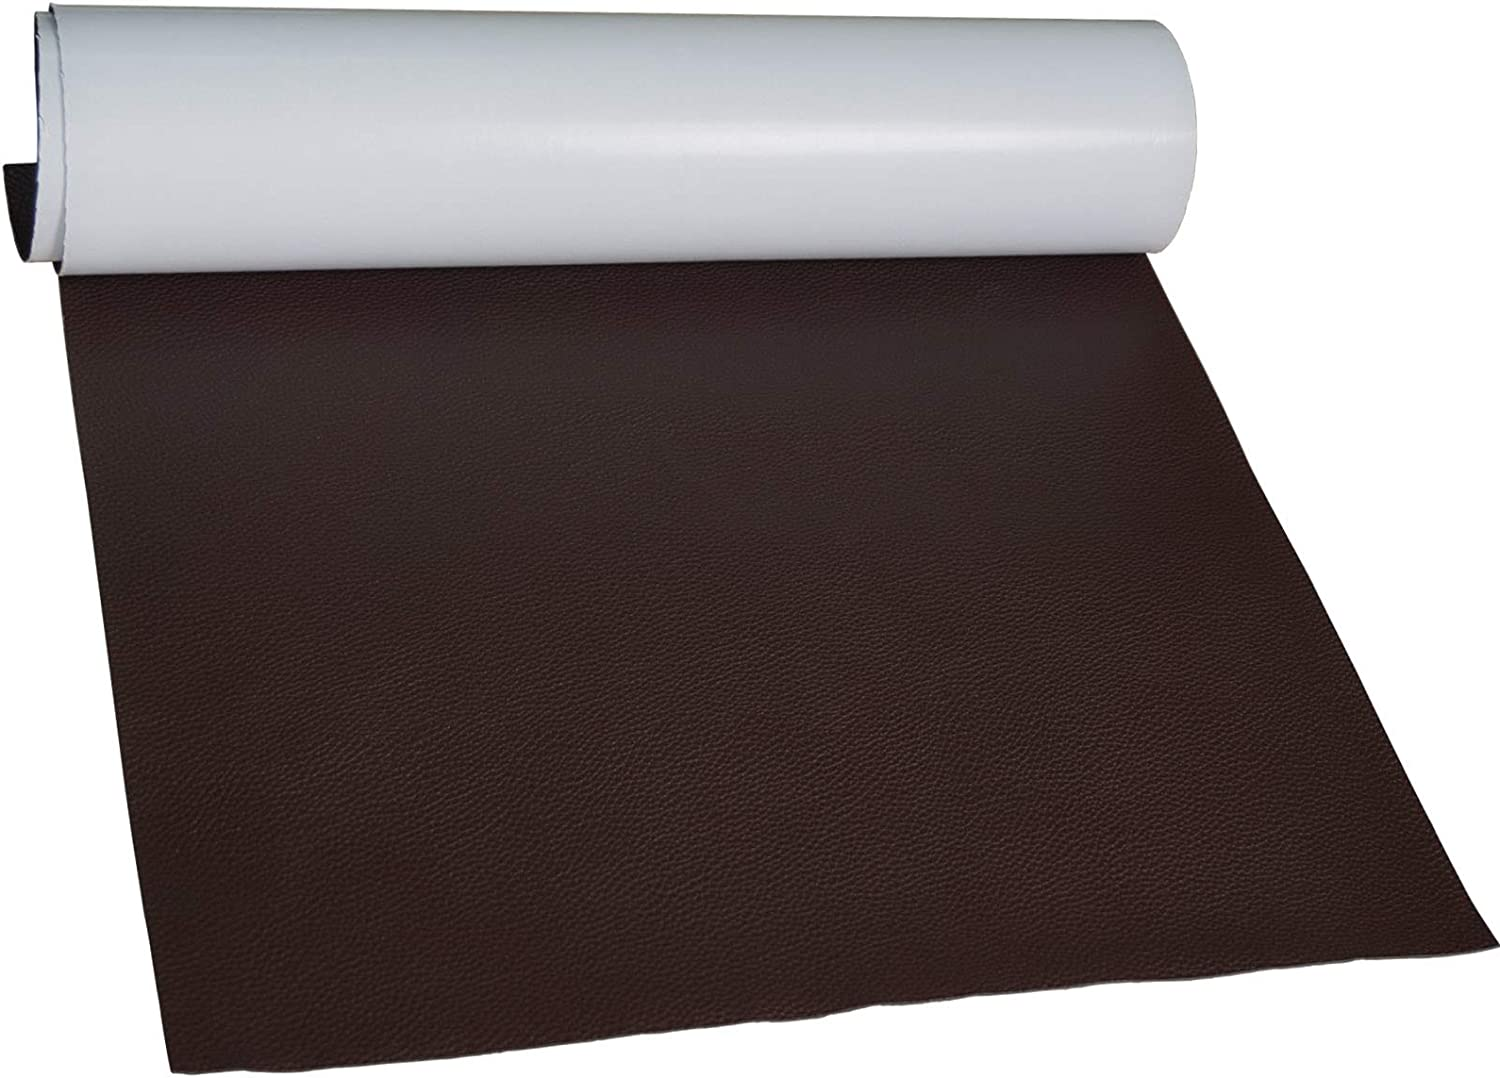 Extra Large Leather Repair Patch, 18